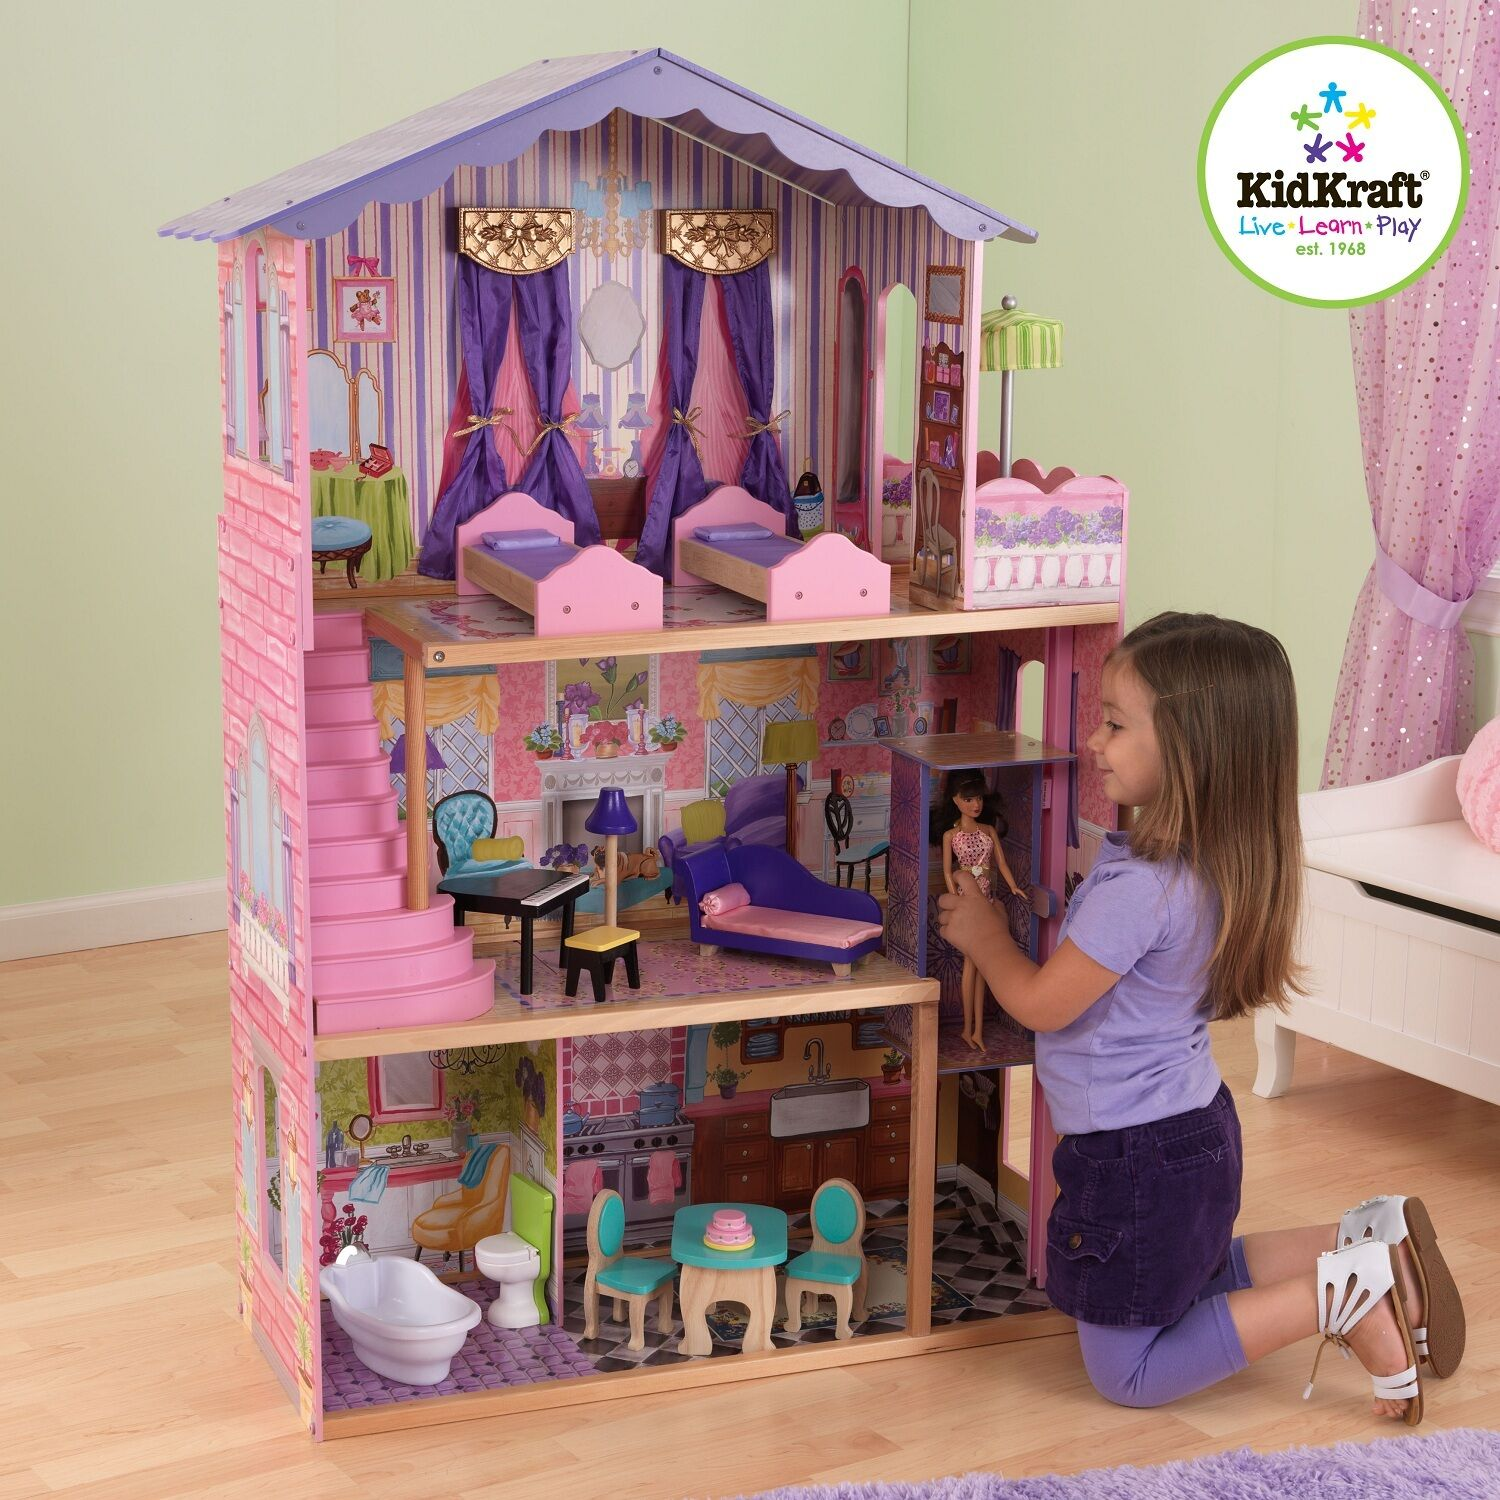 Kidkraft My Dream Mansion Holz Puppenhaus mit für Barbie